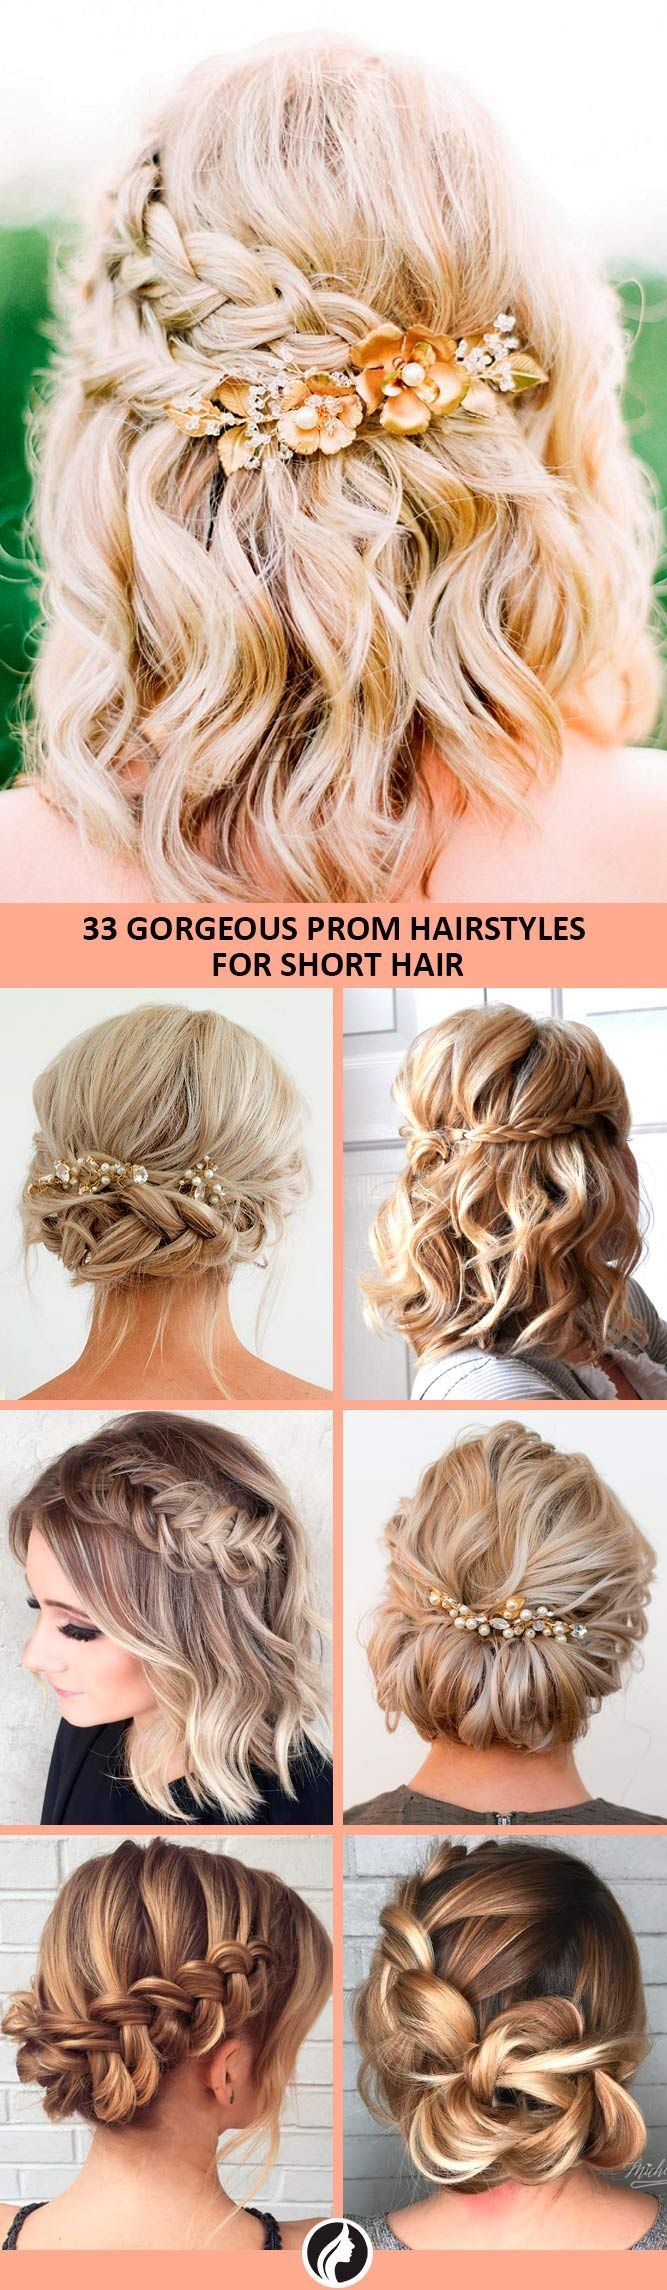 Easy Hairstyles For Short Hair Inspiration Looking For A Simple But Beautiful Hairstyle For Your Prom Night